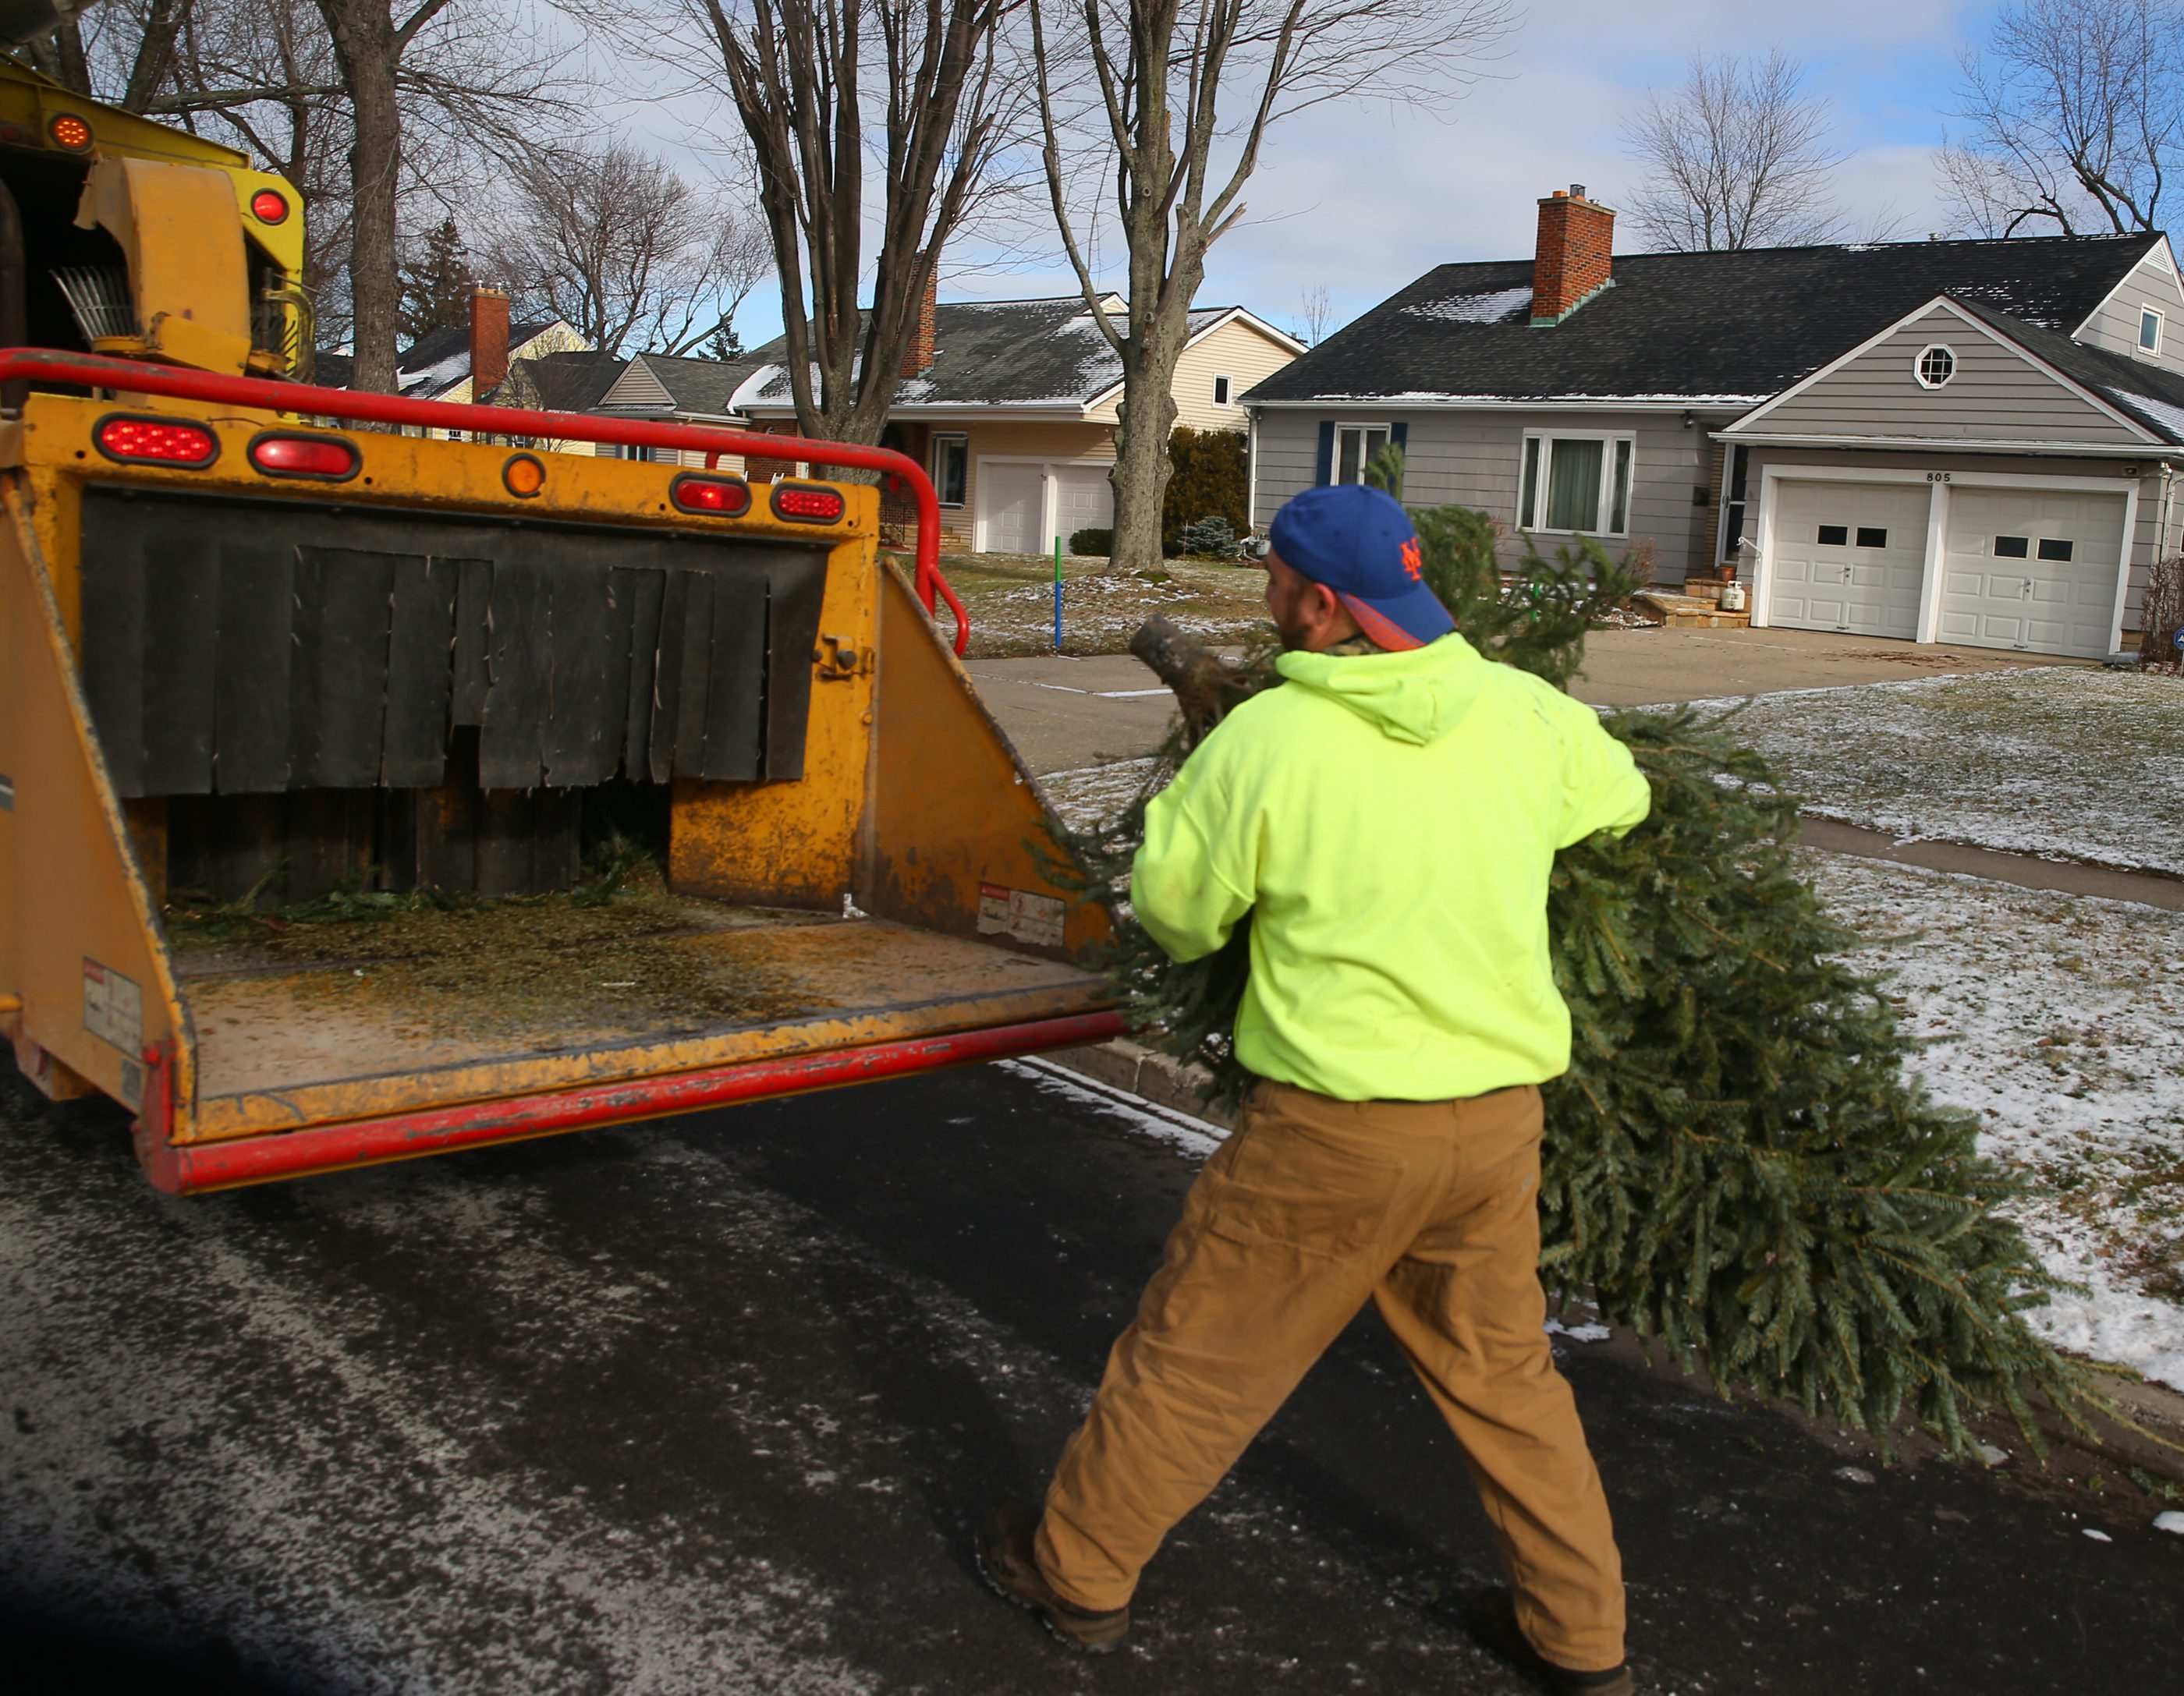 Mike Faraci, a tree trimmer with Town of Tonawanda, helps collect discarded Christmas trees and puts them into a wood chipper in the Town of Tonawanda, N.Y., on Jan. 5, 2016. (John Hickey/Buffalo News)